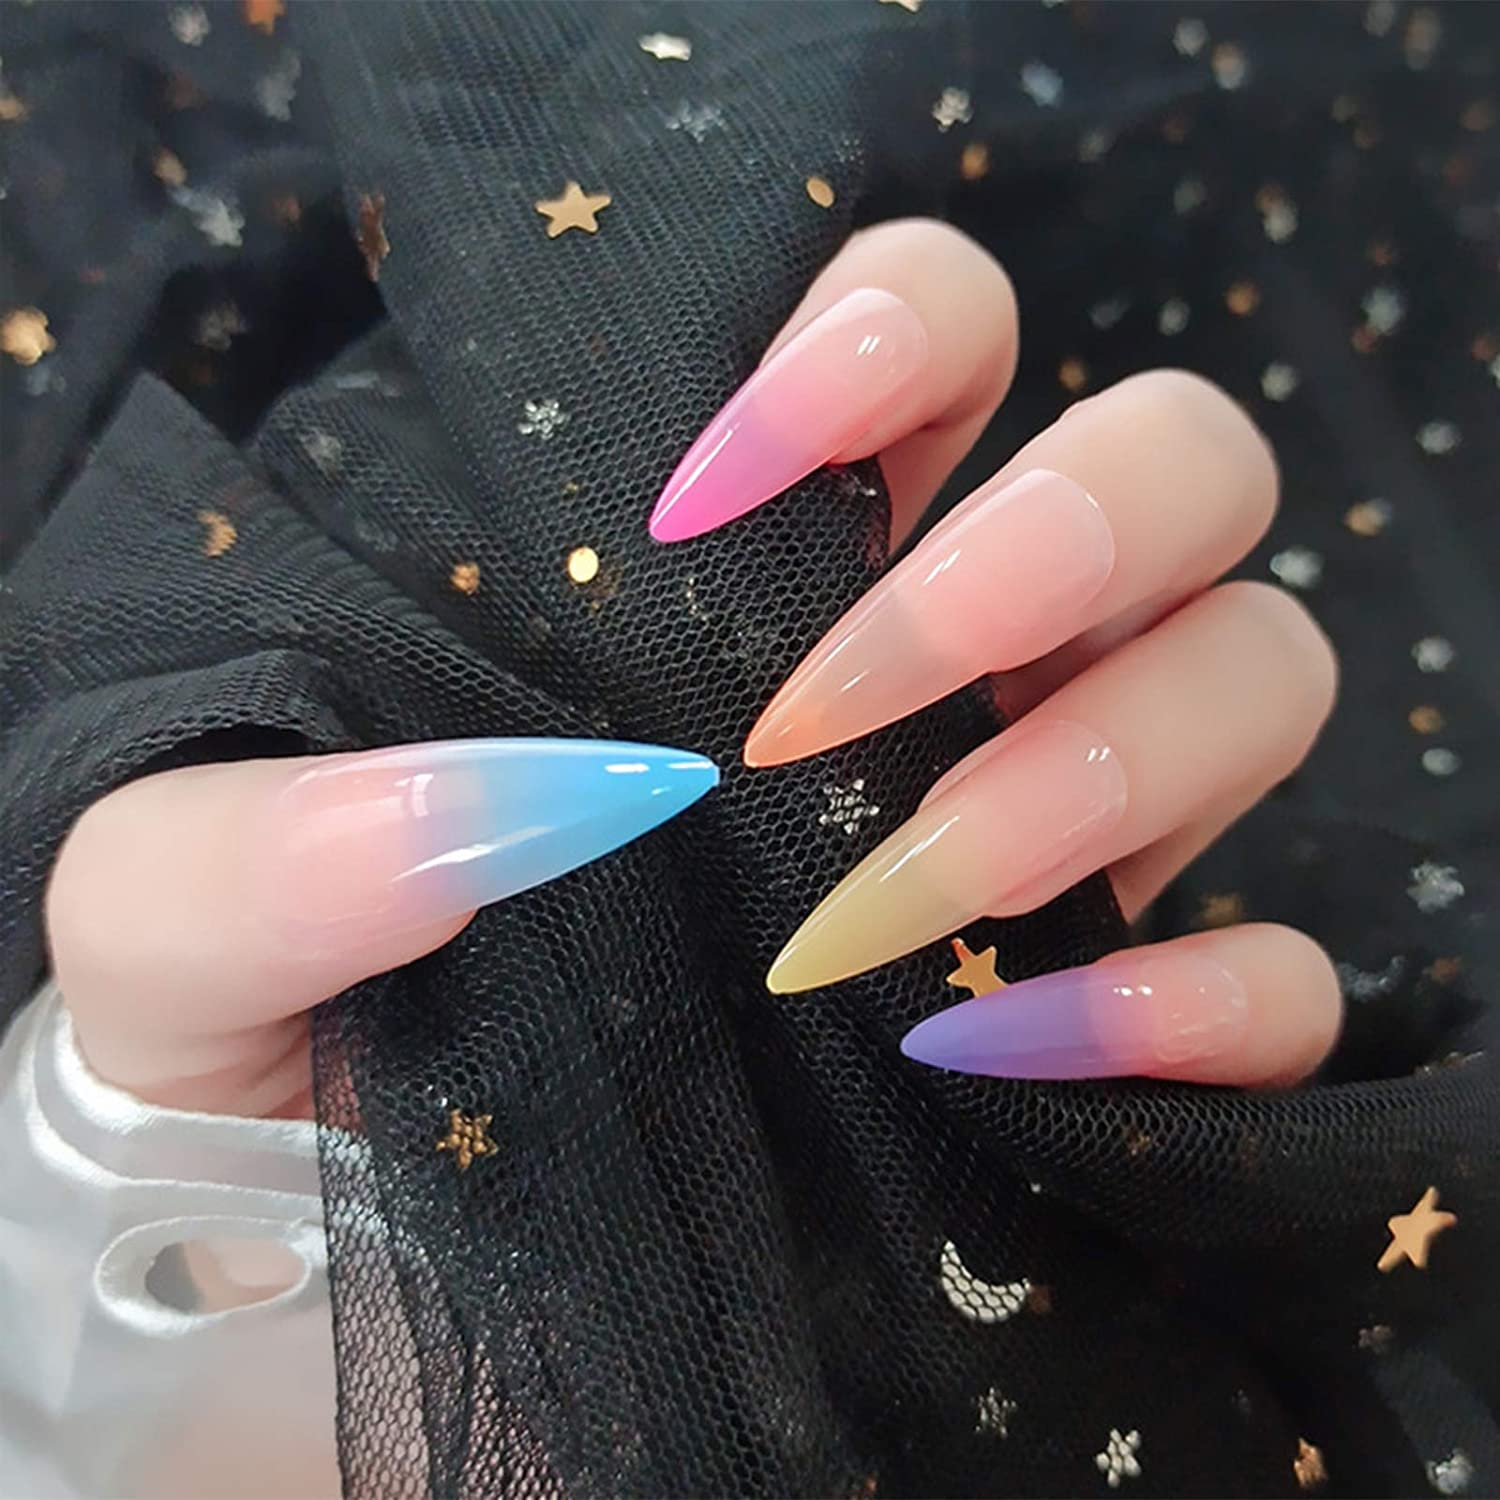 Max 56% OFF Glossy Long Stiletto UV Top Coat False Nails Colorful Max 84% OFF R Gradient